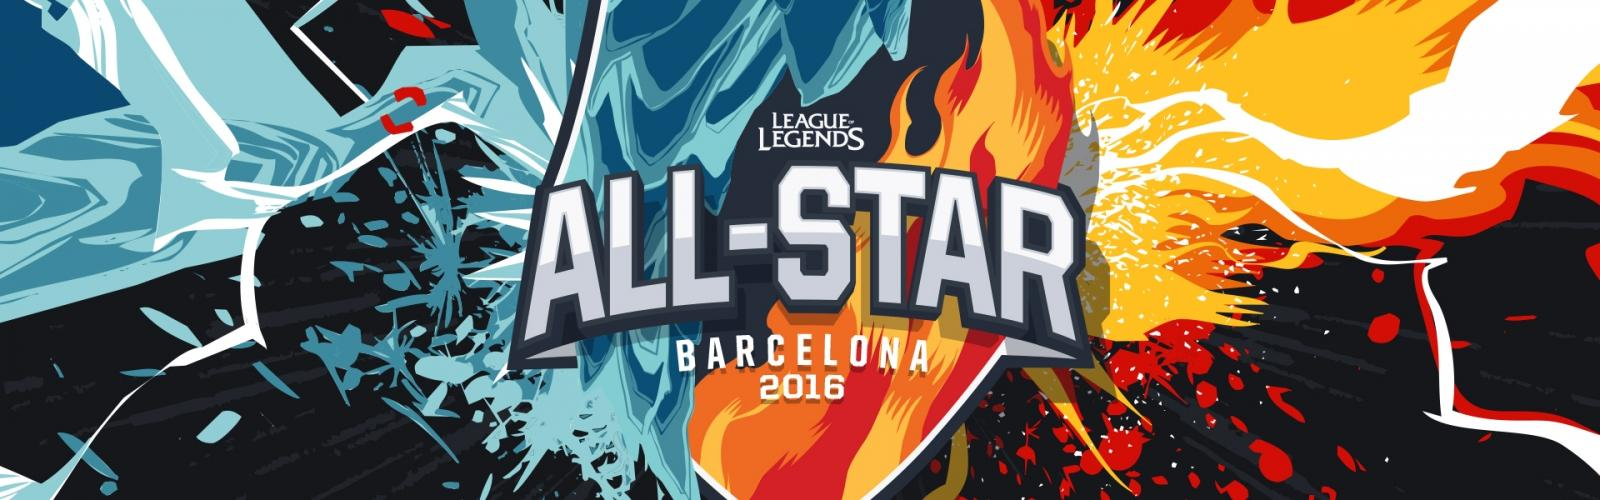 The GPL All-Star squad will now head to Barcelona, Spain for All-Star  Barcelona 2016 from December 8-11. They will join the All-Star teams from  North ...